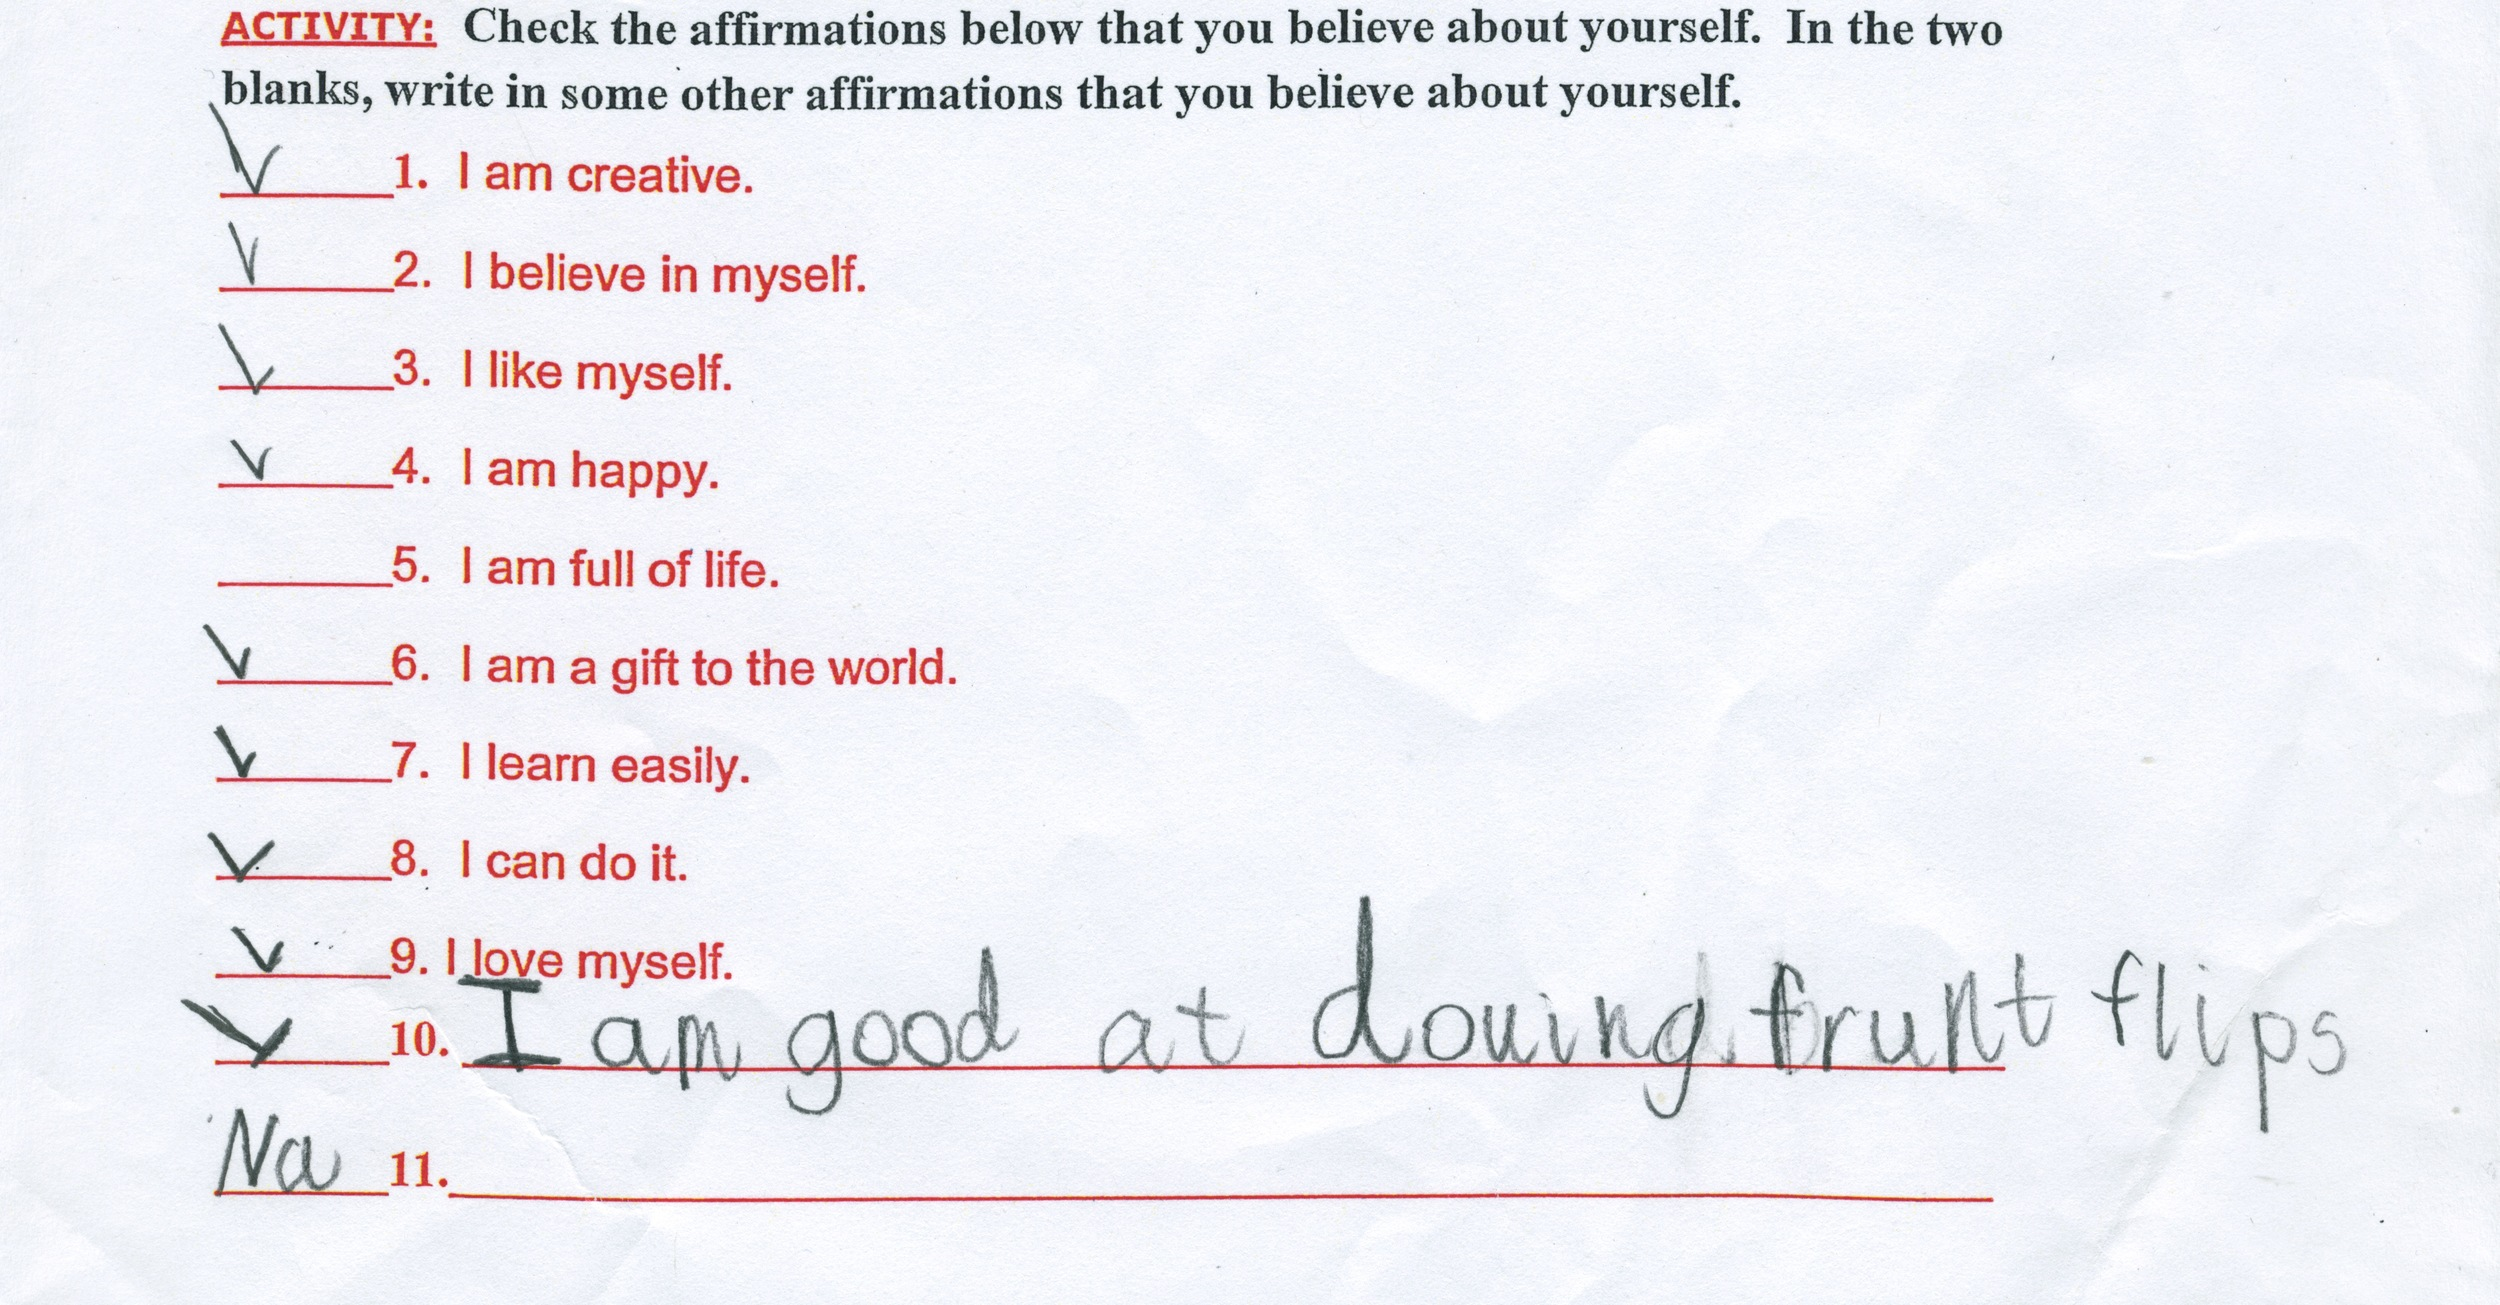 Mikes Affirmations.jpeg